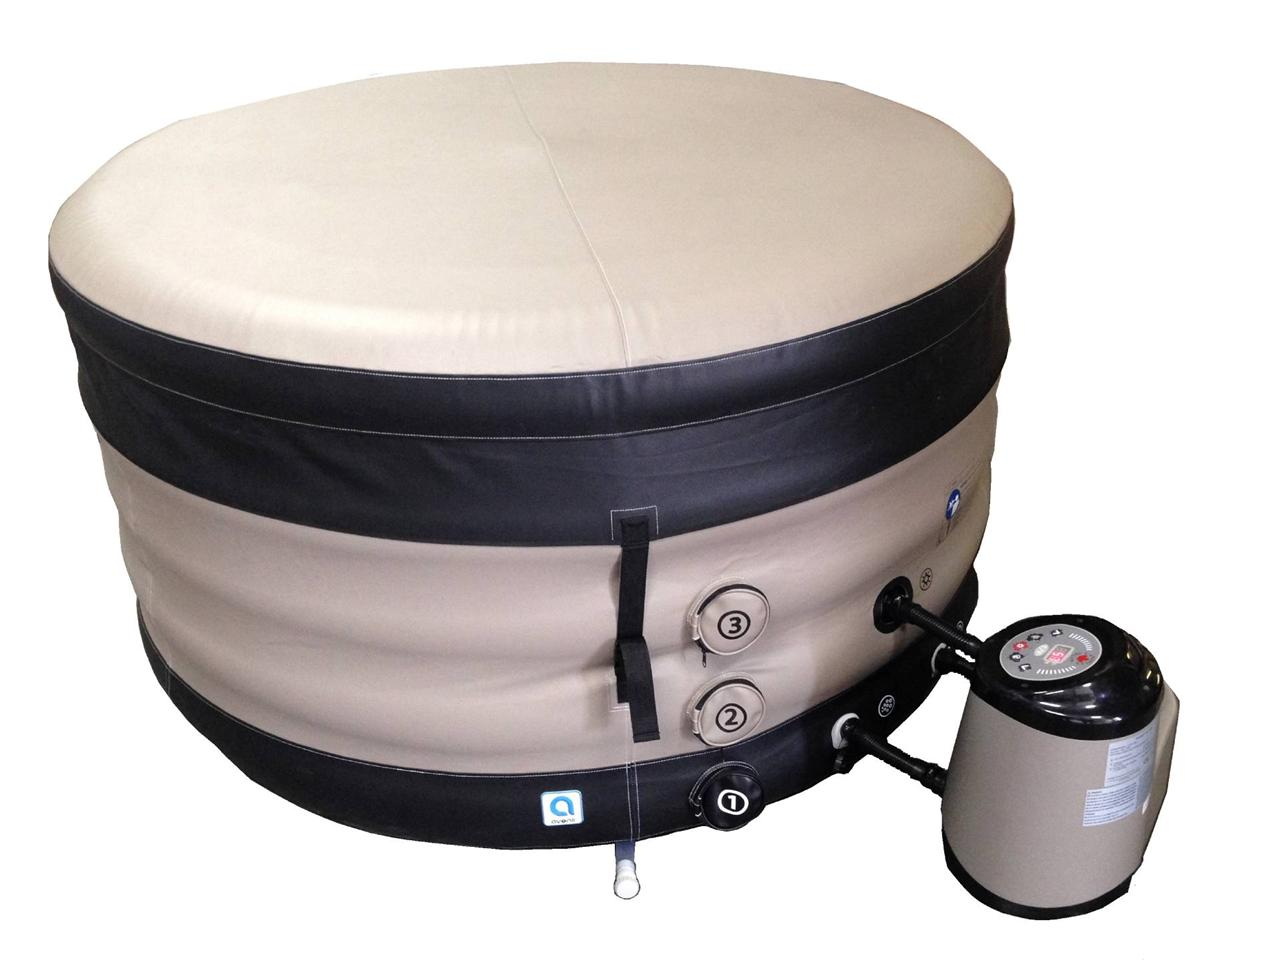 2015 grand rapids spa gonflable extra profond 4 personne spa portable - Comparatif spa gonflable ...